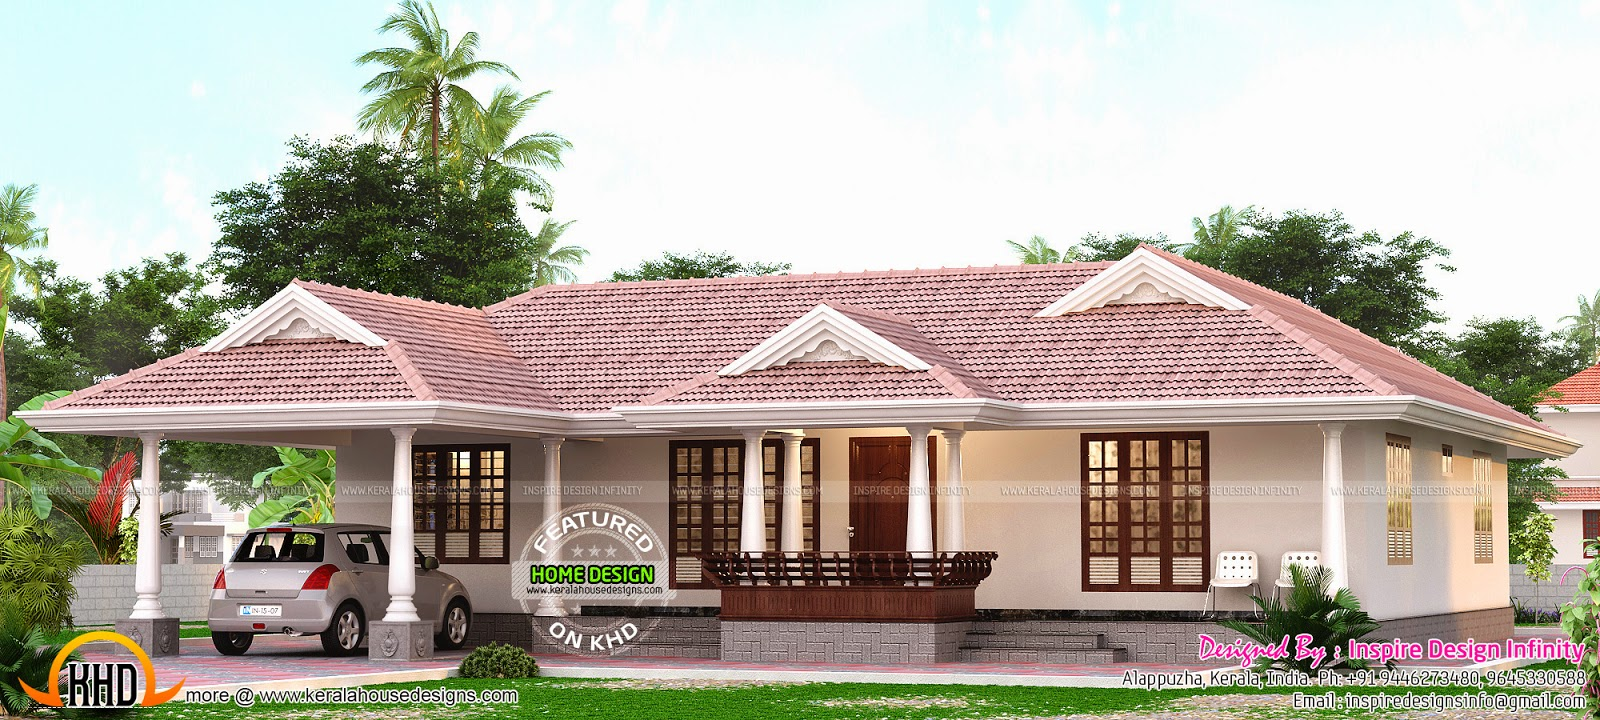 Kerala model single storied home kerala home design and for Kerala single floor house plans